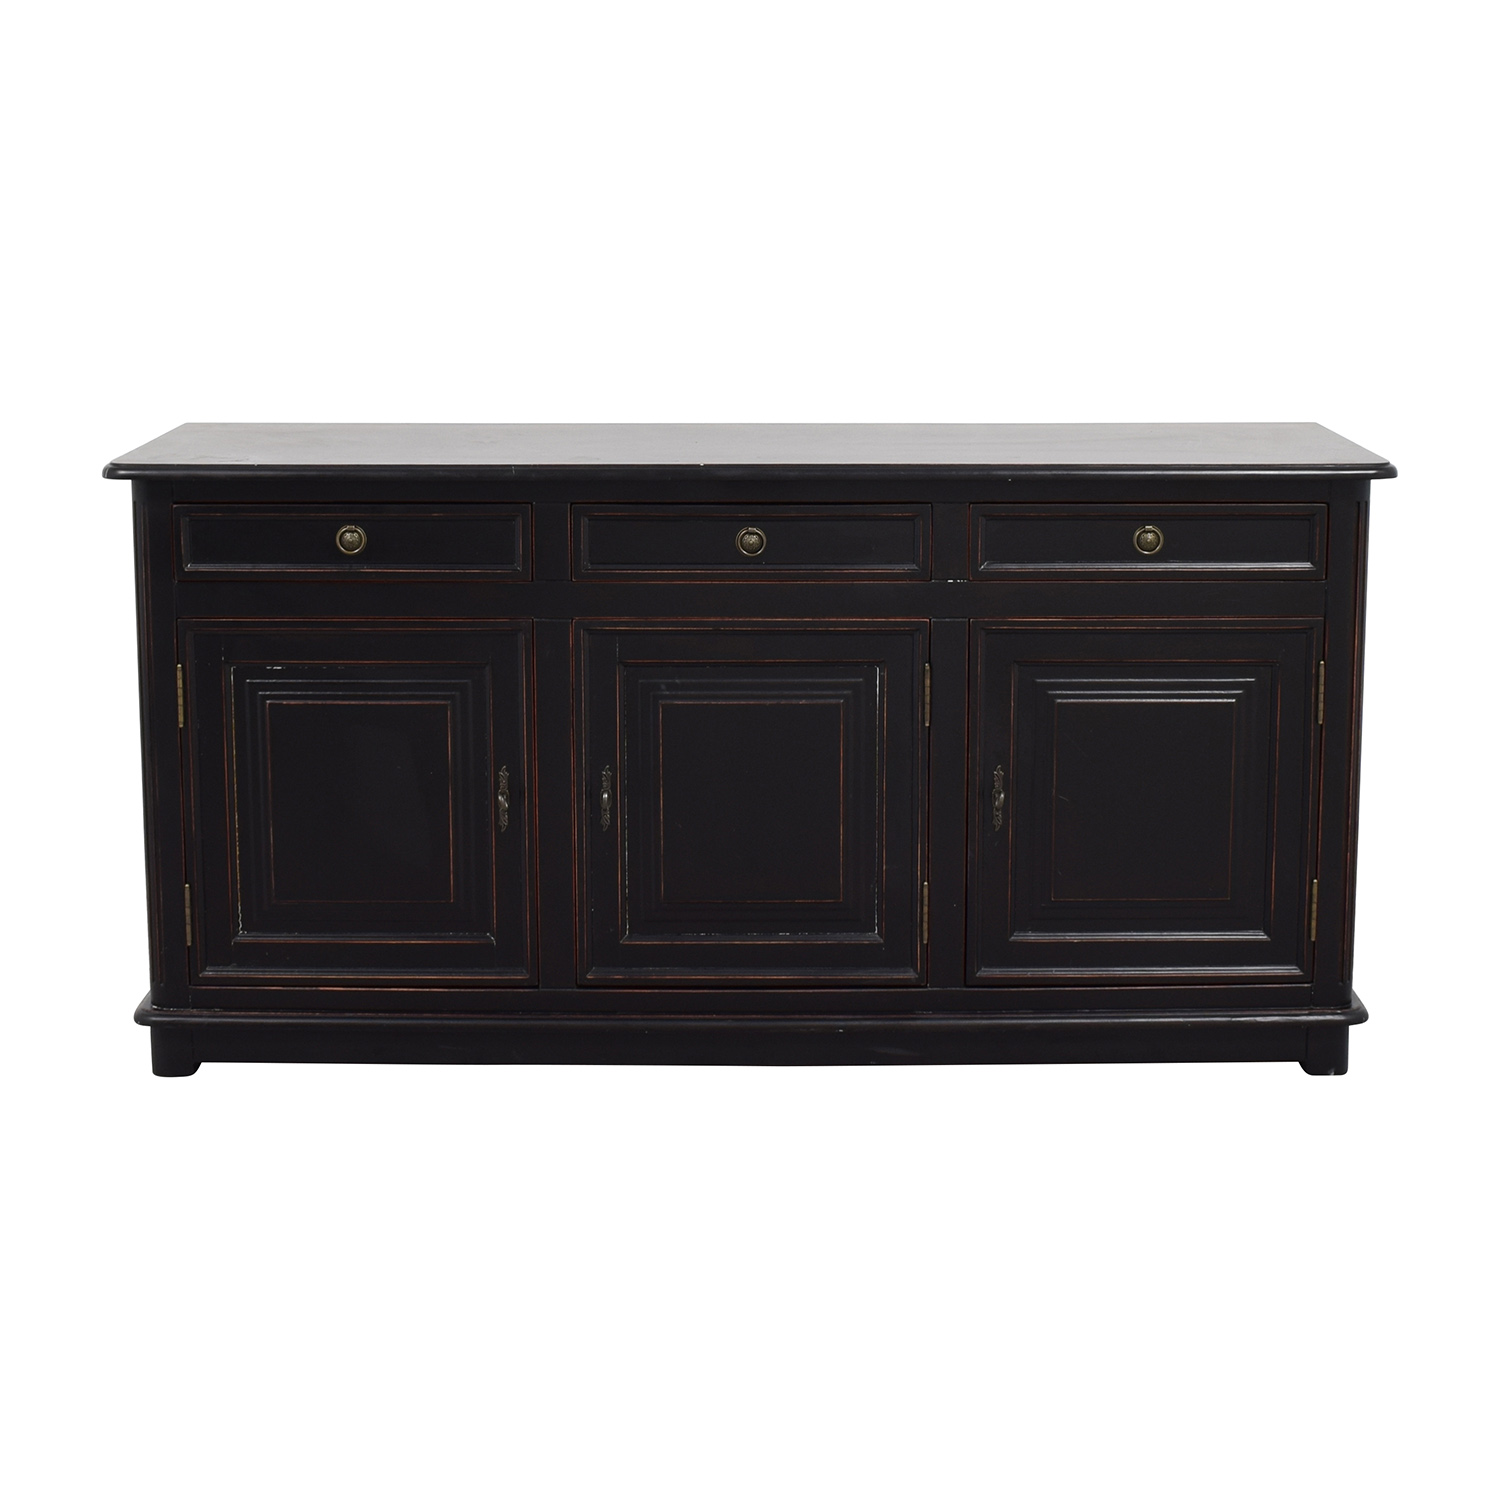 Ballard Designs Ballard Designs Dehavilland 3-Drawer Console or Sidetable discount